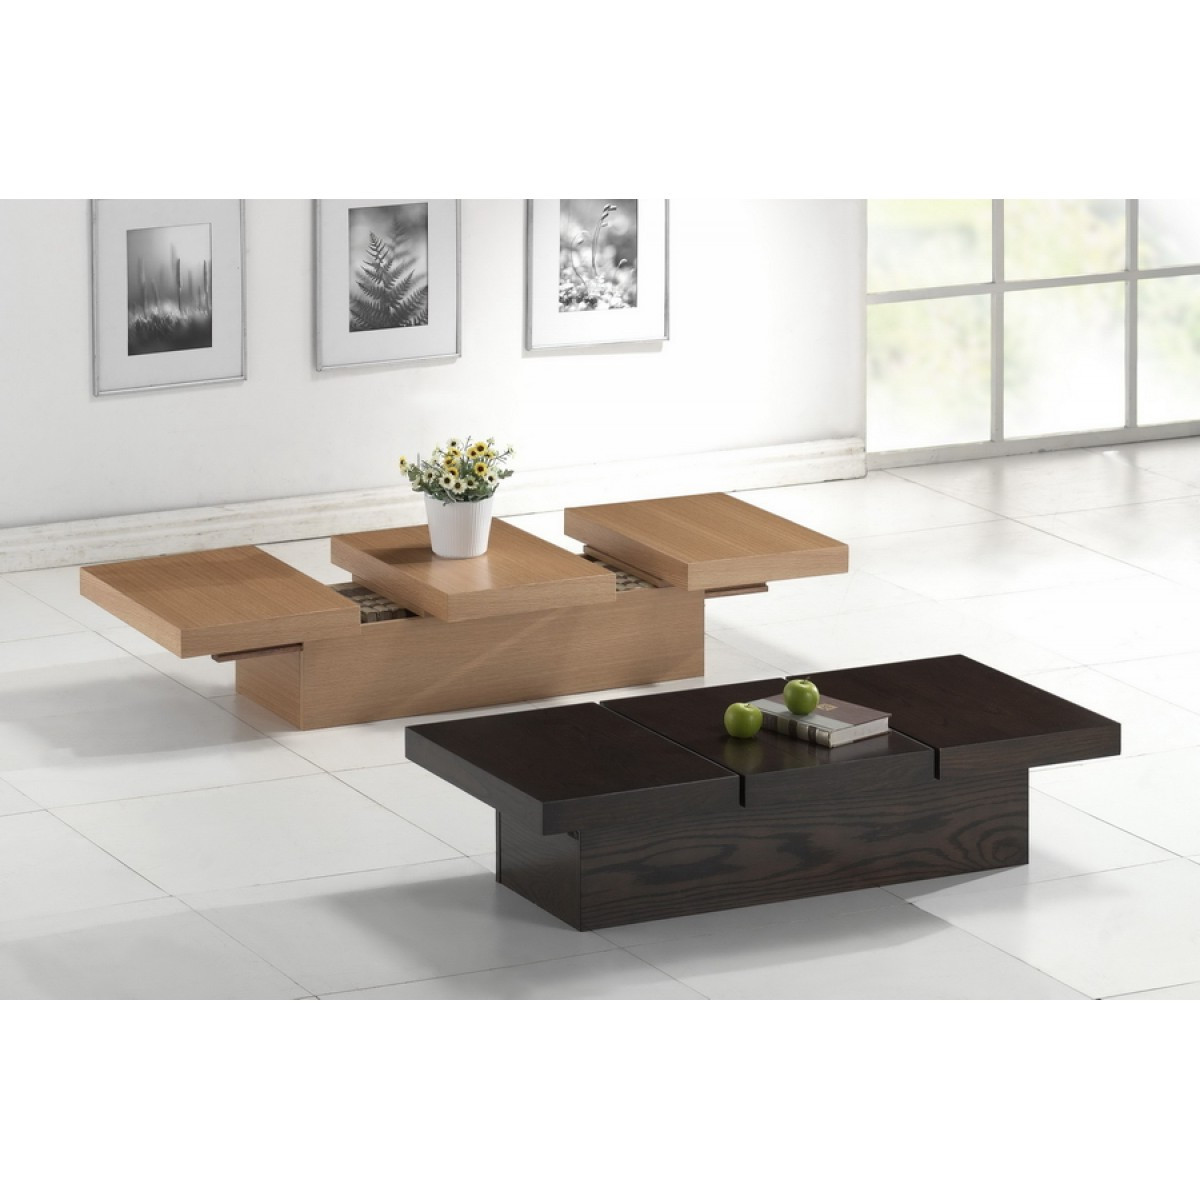 Modern living room coffee tables sets roy home design for Living room ideas without coffee table